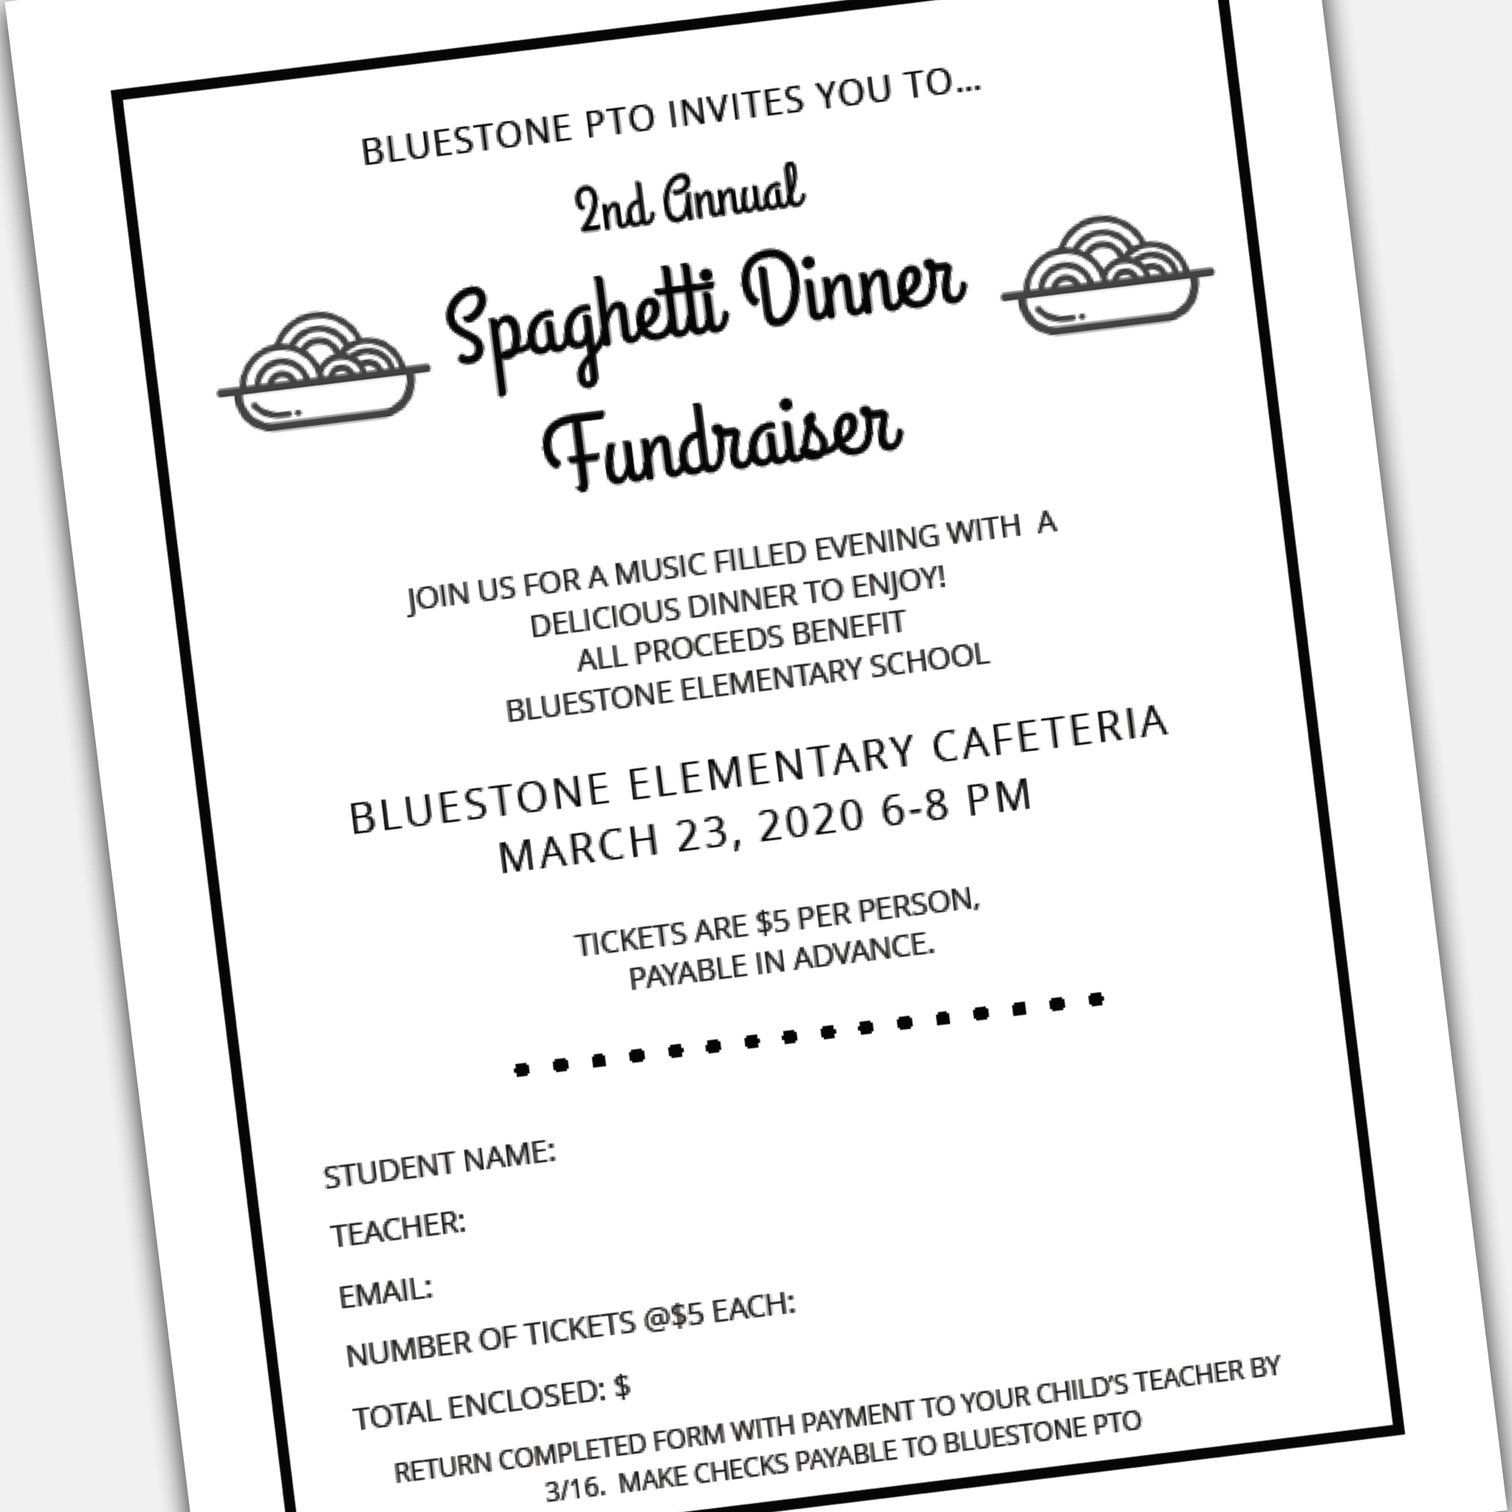 Spaghetti Dinner Fundraiser Event Flyer And Ticket Template Set